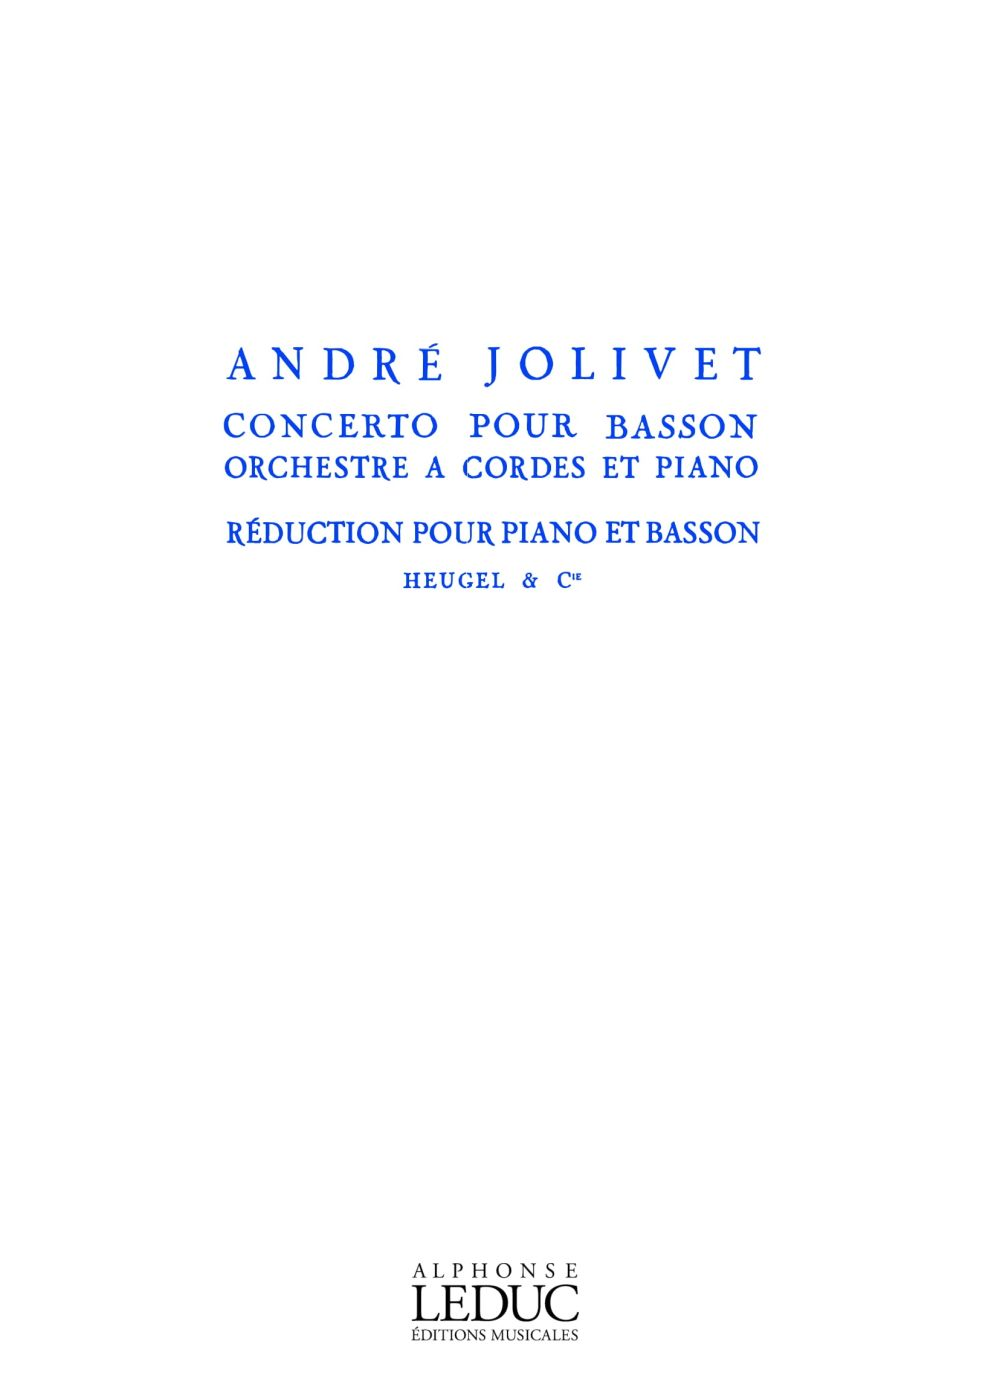 André Jolivet: Concerto For Bassoon  String Orchestra And Piano: Bassoon: